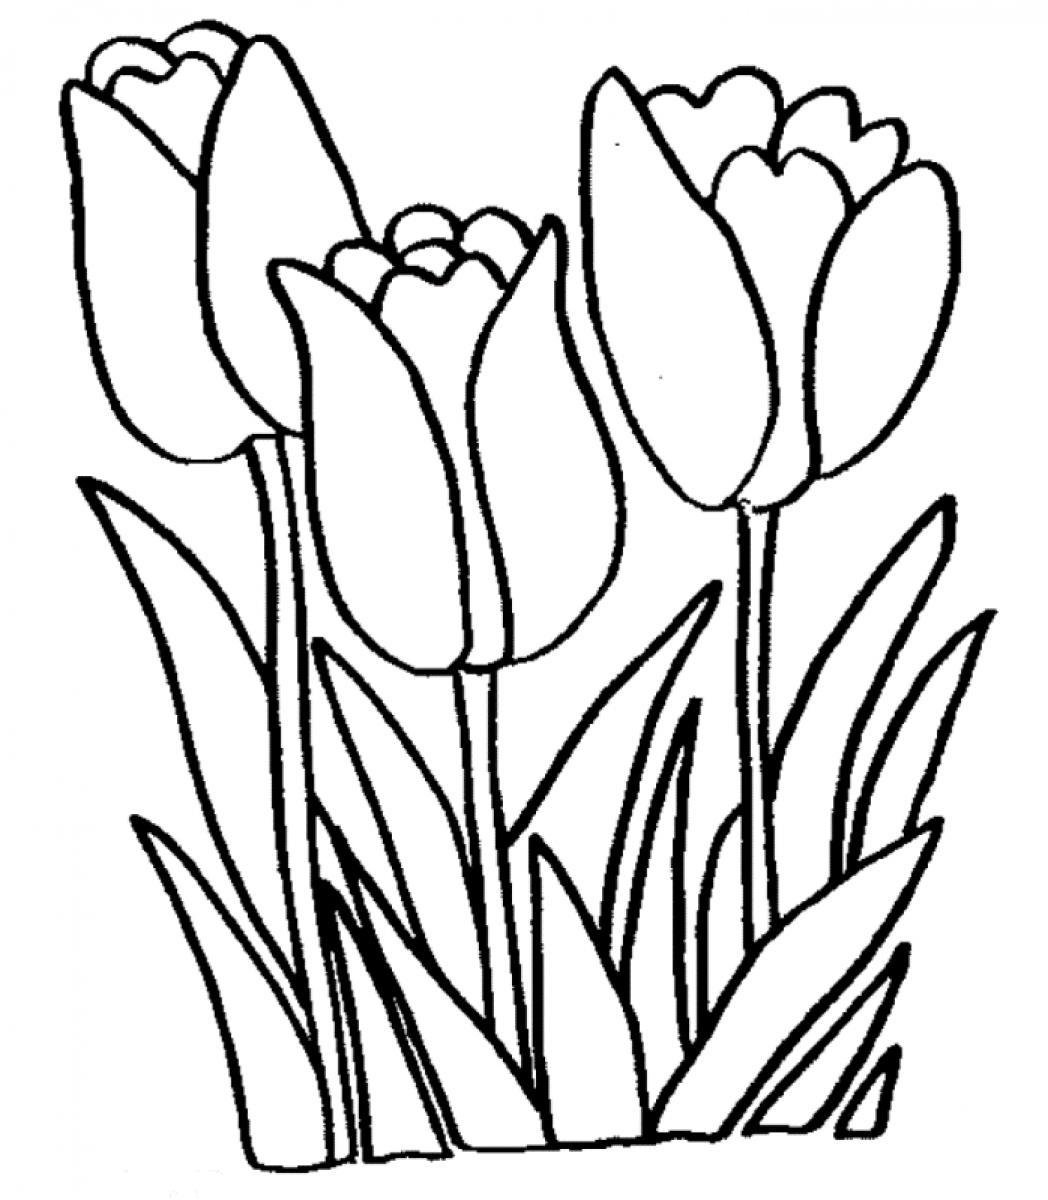 tulip colouring tulip coloring pages to download and print for free colouring tulip 1 1